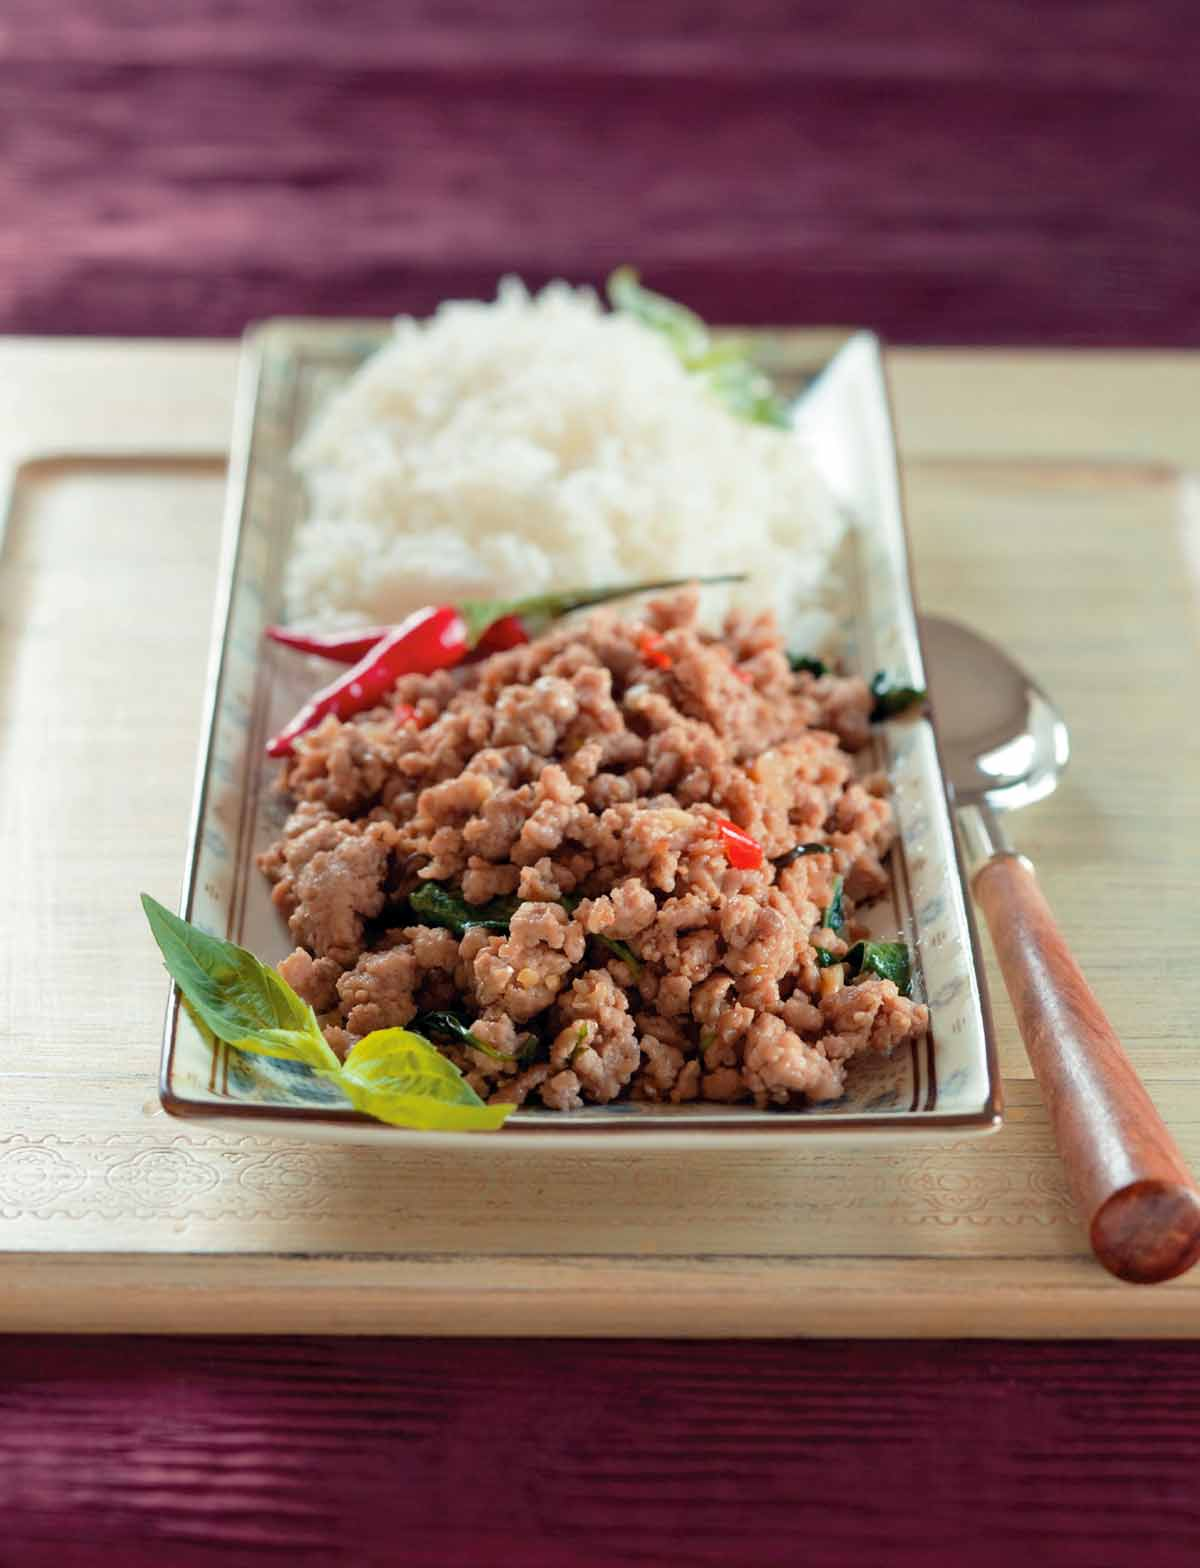 A rectangular serving dish filled with Thai basil pork, red chiles, and white rice with a serving spoon beside the dish.